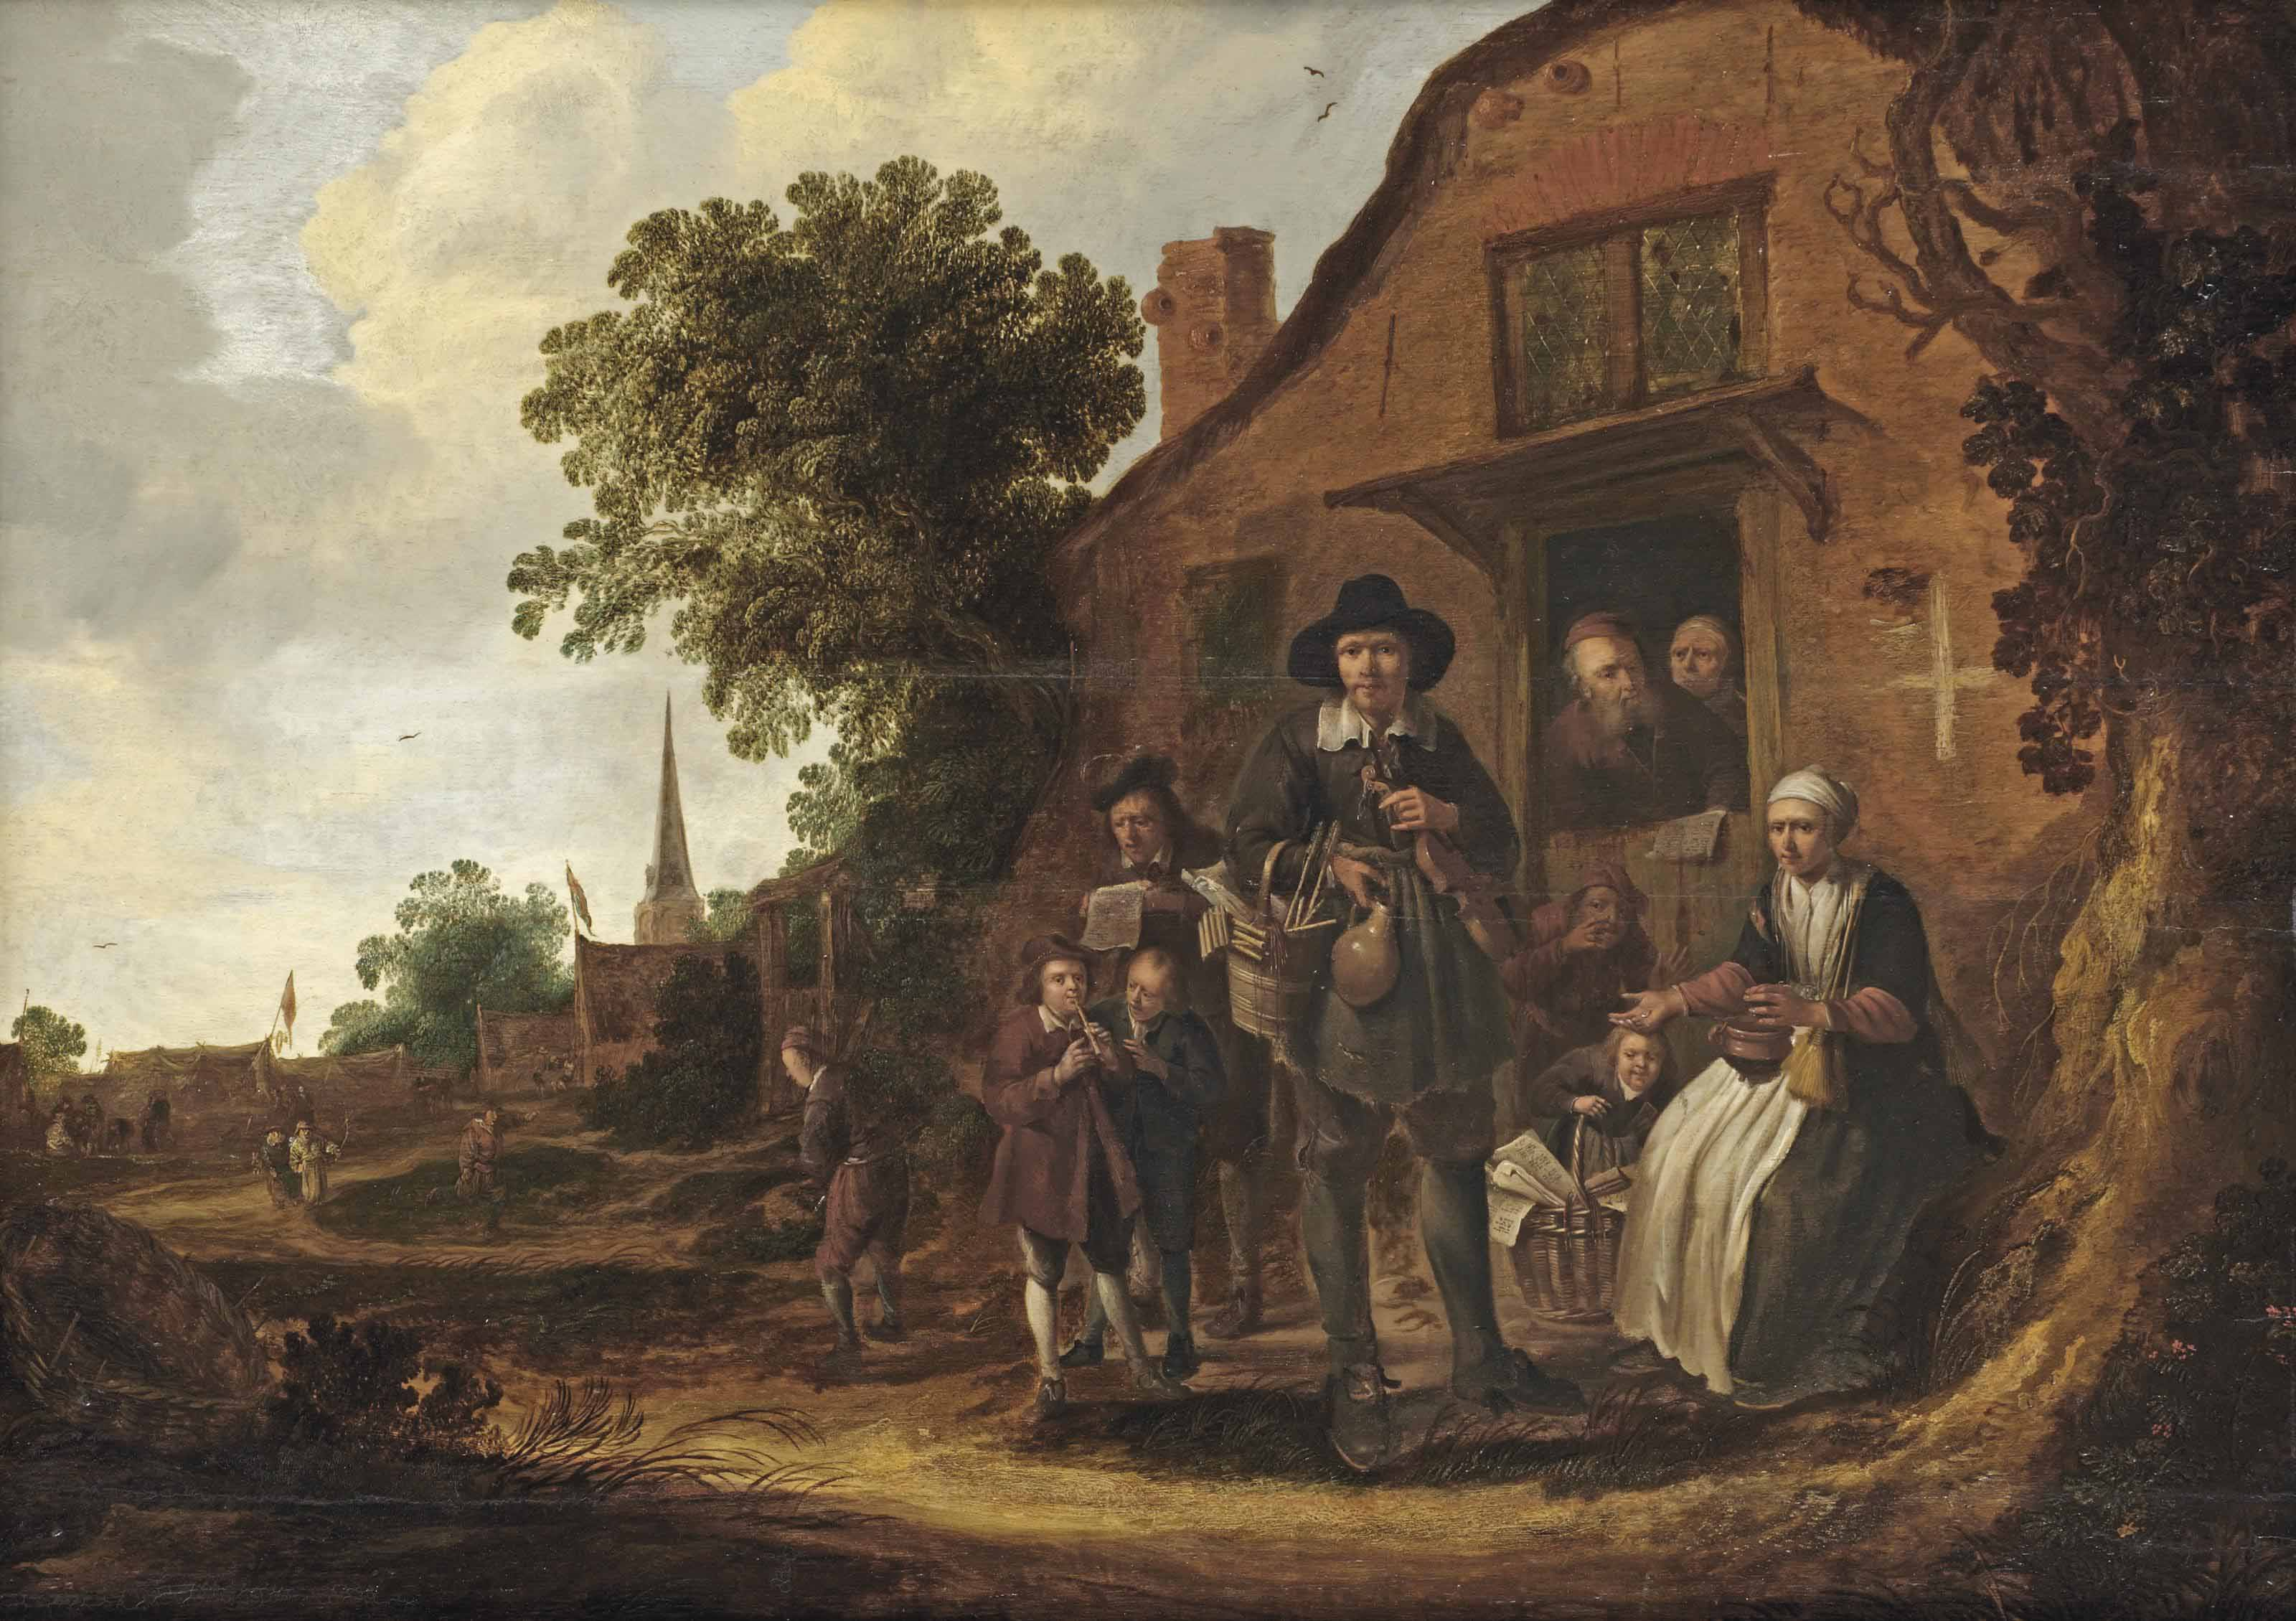 A music merchant surrounded by a group of villagers in front of a farm house